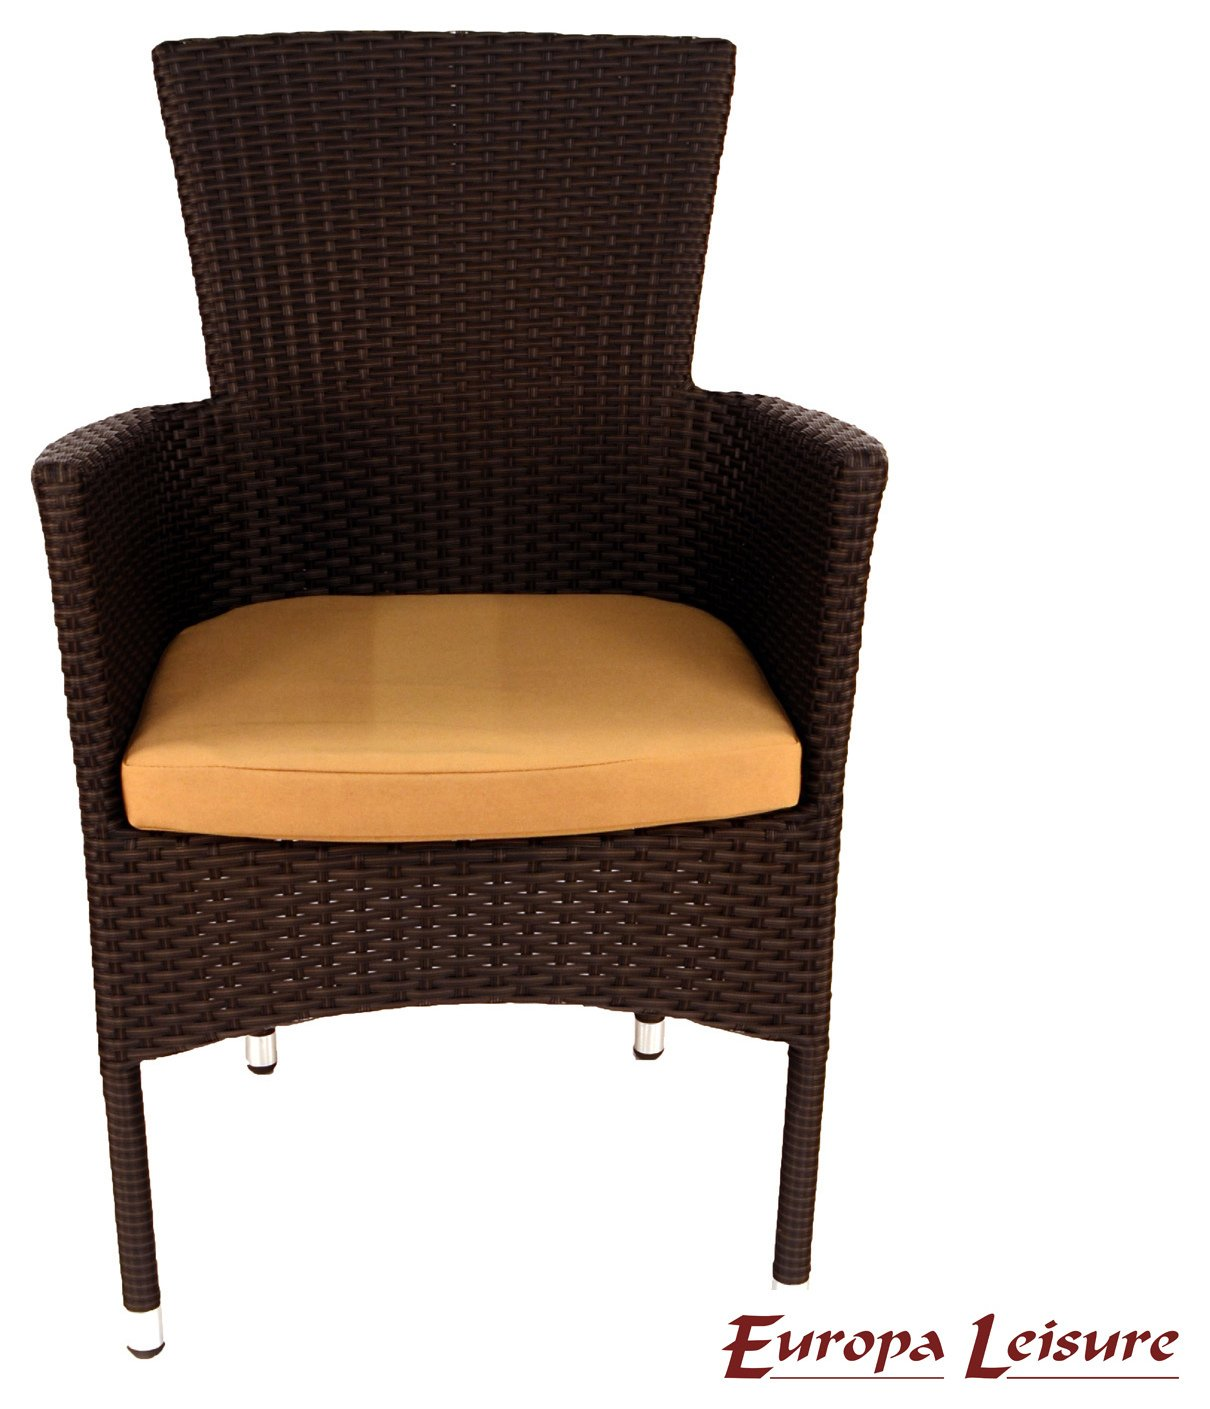 Europa Leisure Brown Stockholm Chair with Cushion Pack of 2. lowest price